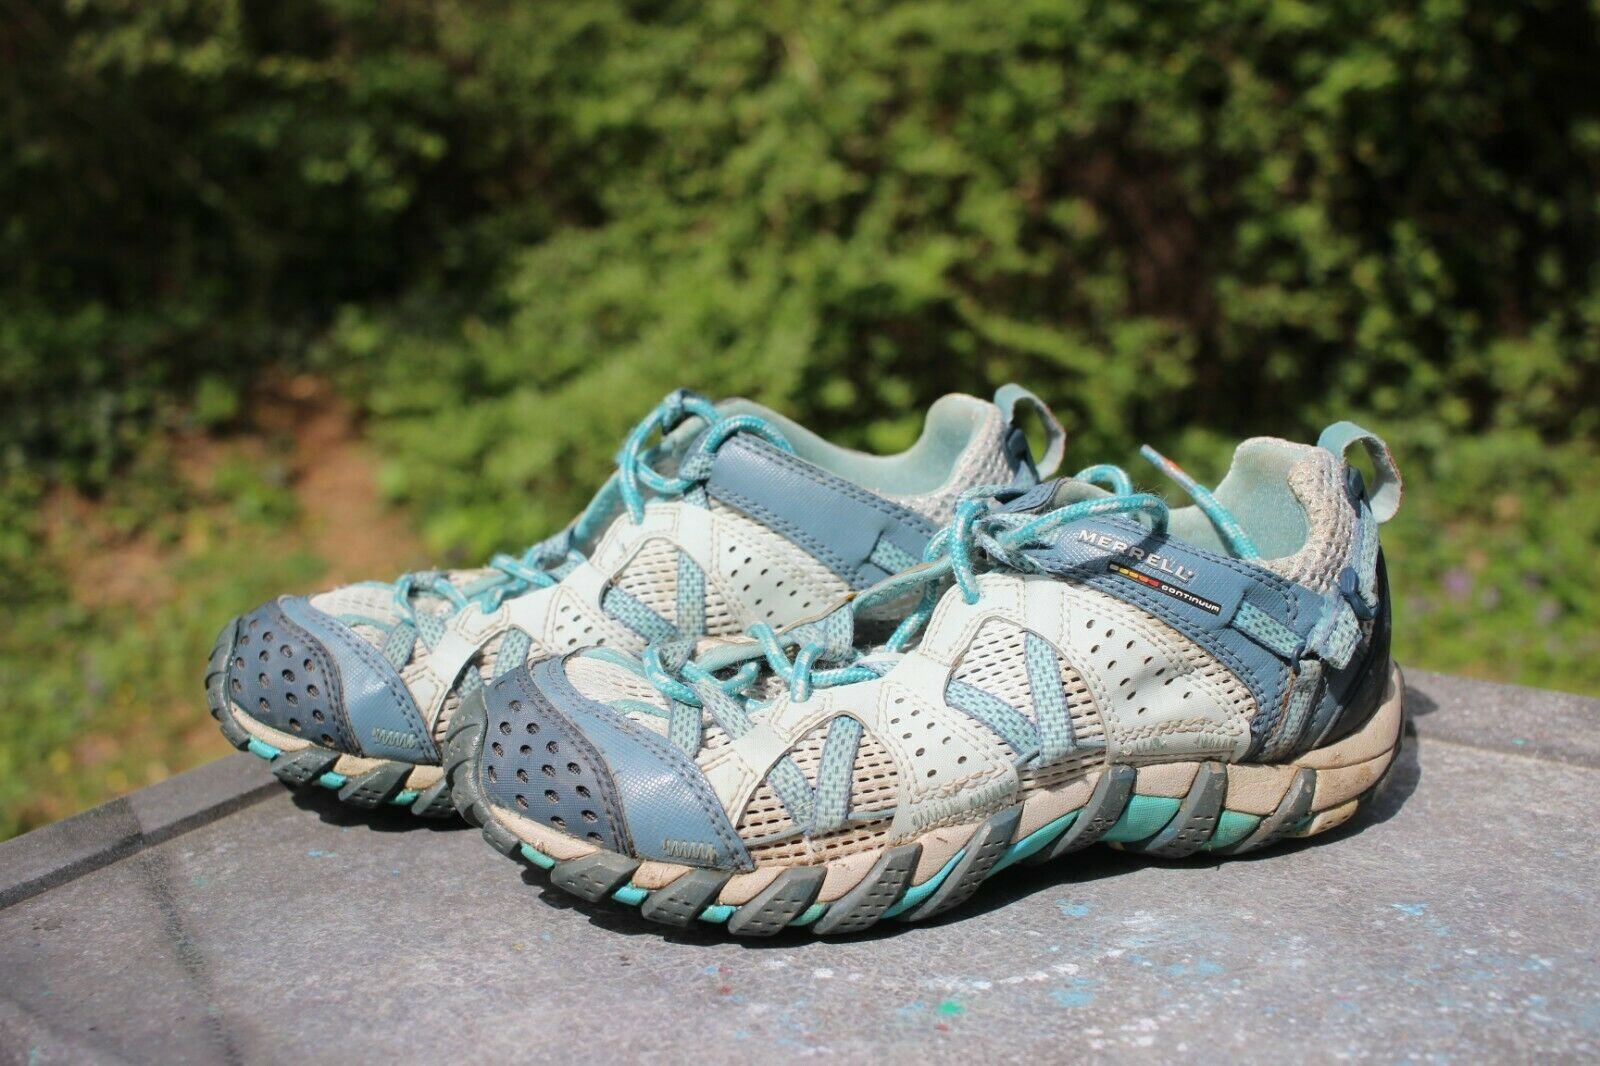 Merrell Waterpro Maipo Teal Women's Active Outdoor shoes J58124 Size 6 US